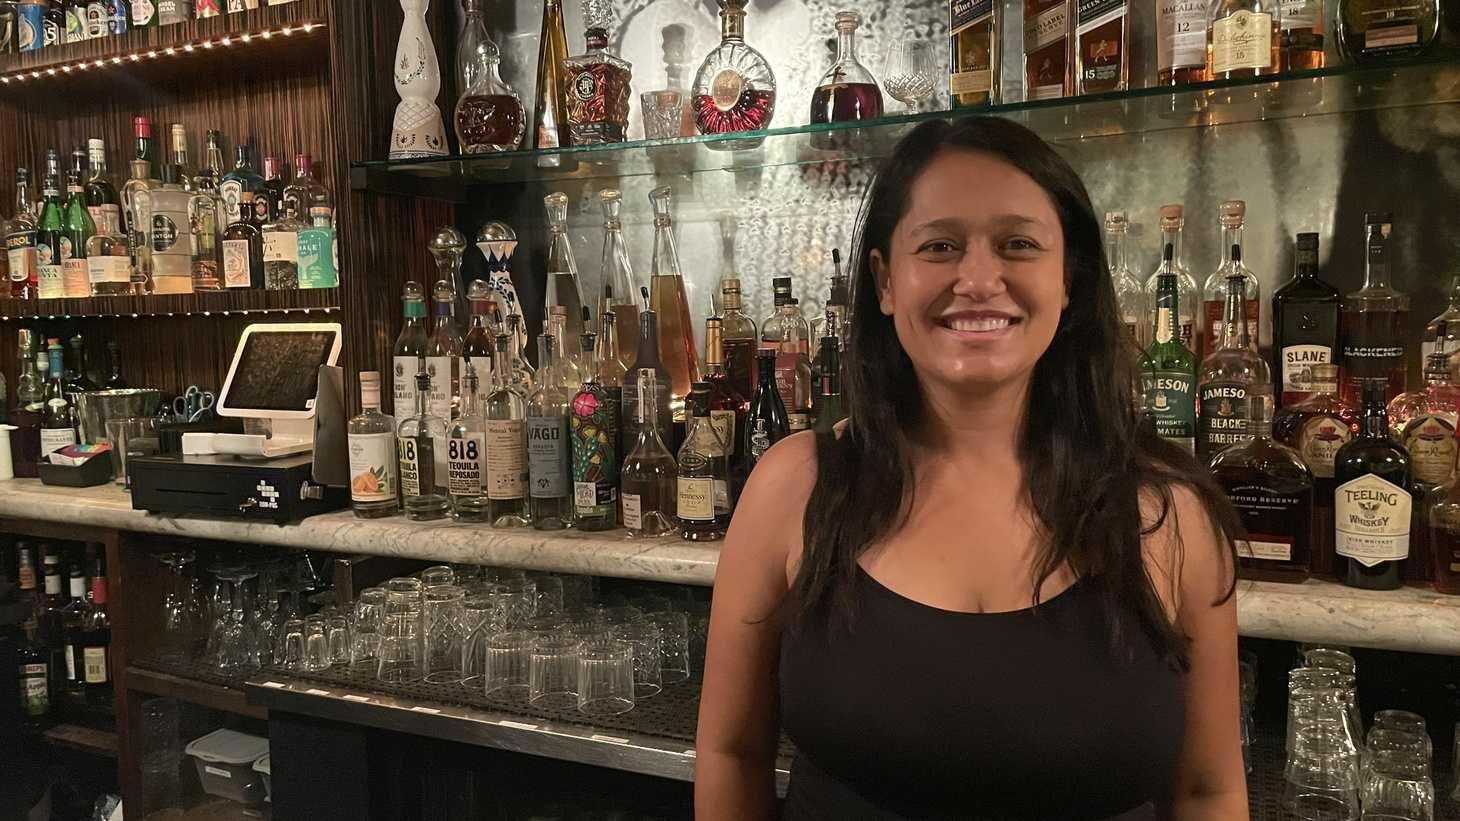 Camila Perry, owner of The North End Hollywood, stands behind her bar as she prepares to open for the evening. She's among the hundreds of small business owners who will be required to enforce a vaccine mandate starting next week.